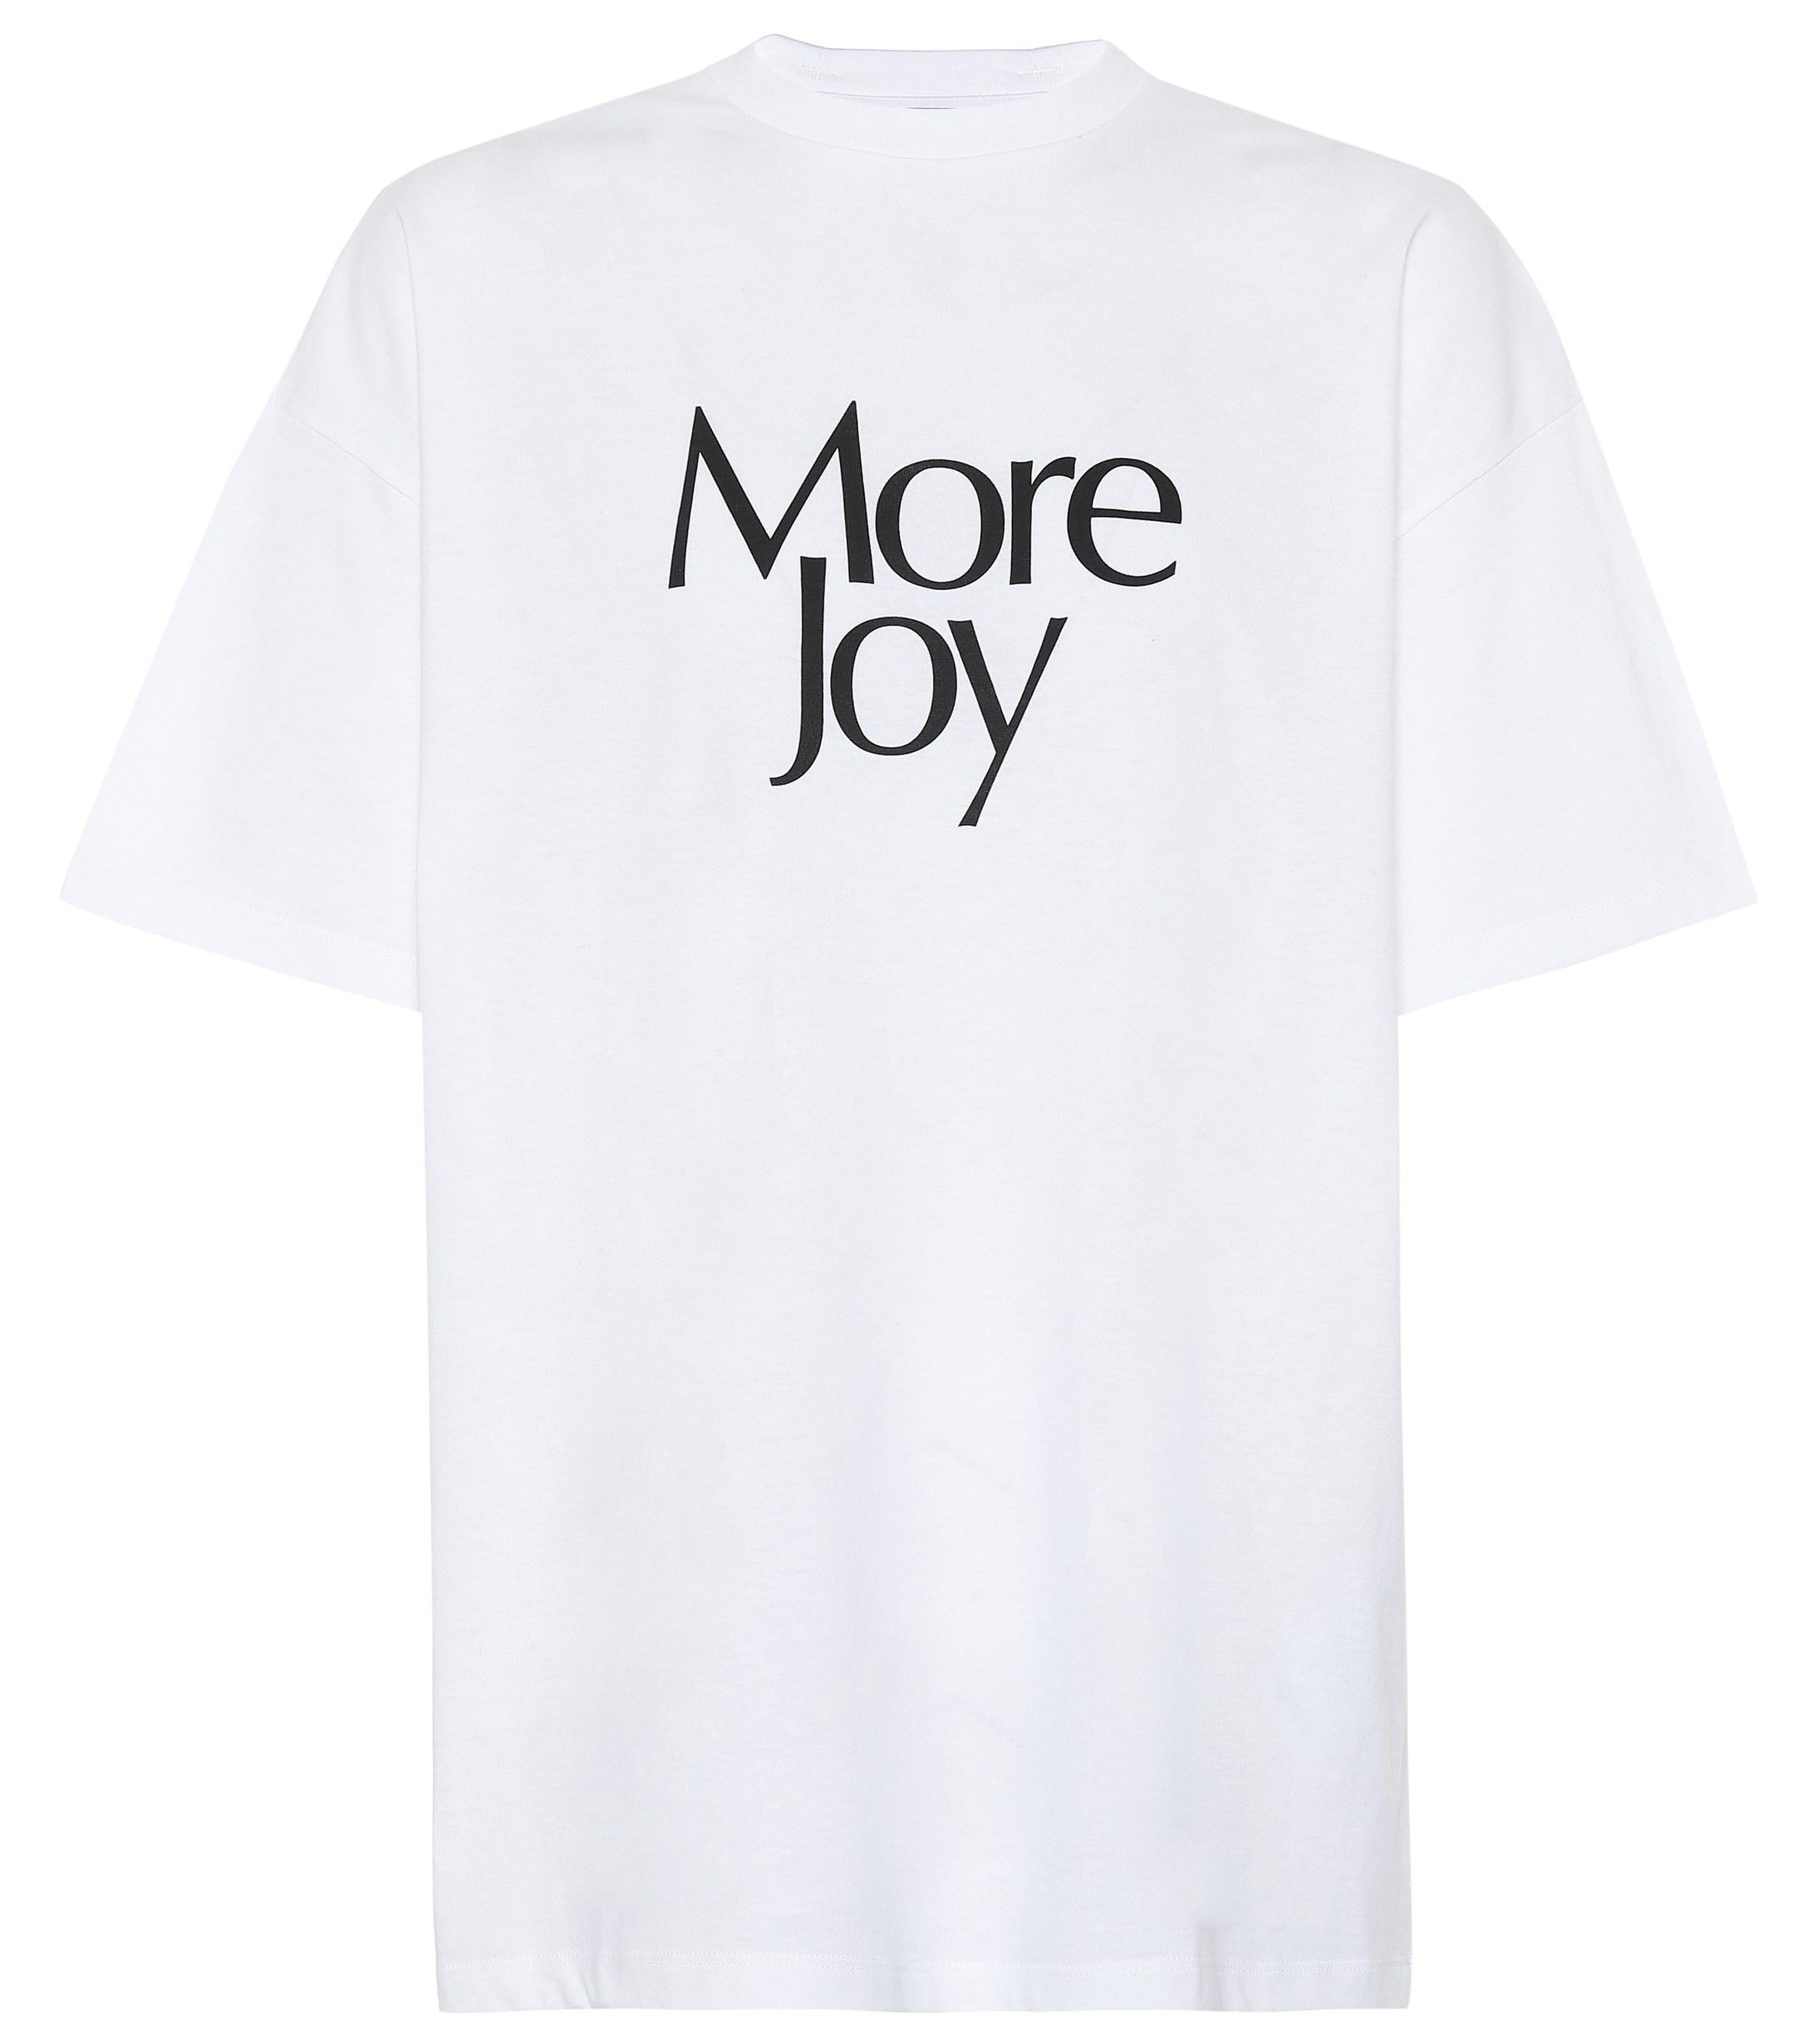 7a52d1b09 Lyst - Christopher Kane More Joy Printed Cotton T-shirt in White